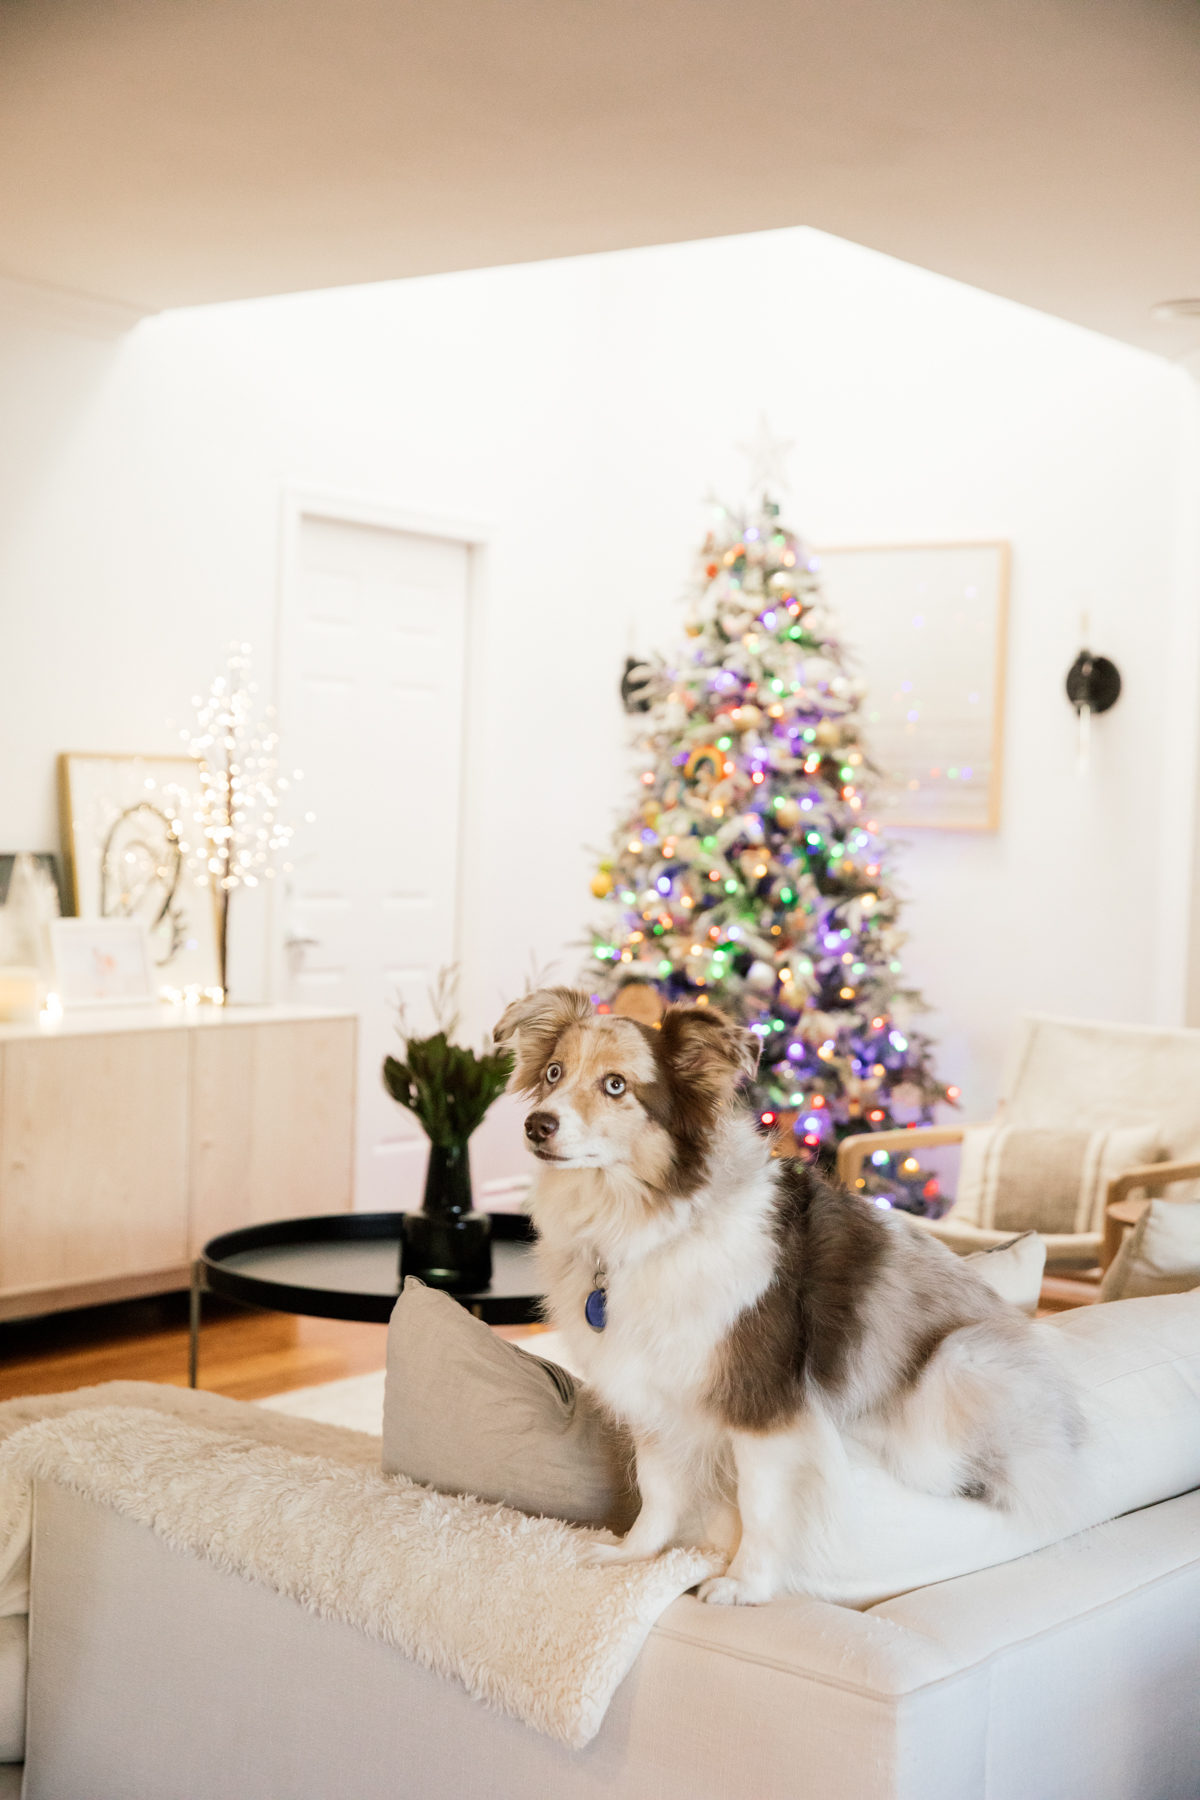 Indoor Holiday decor of Christmas Tree with Mini Australian Shepherd Dog